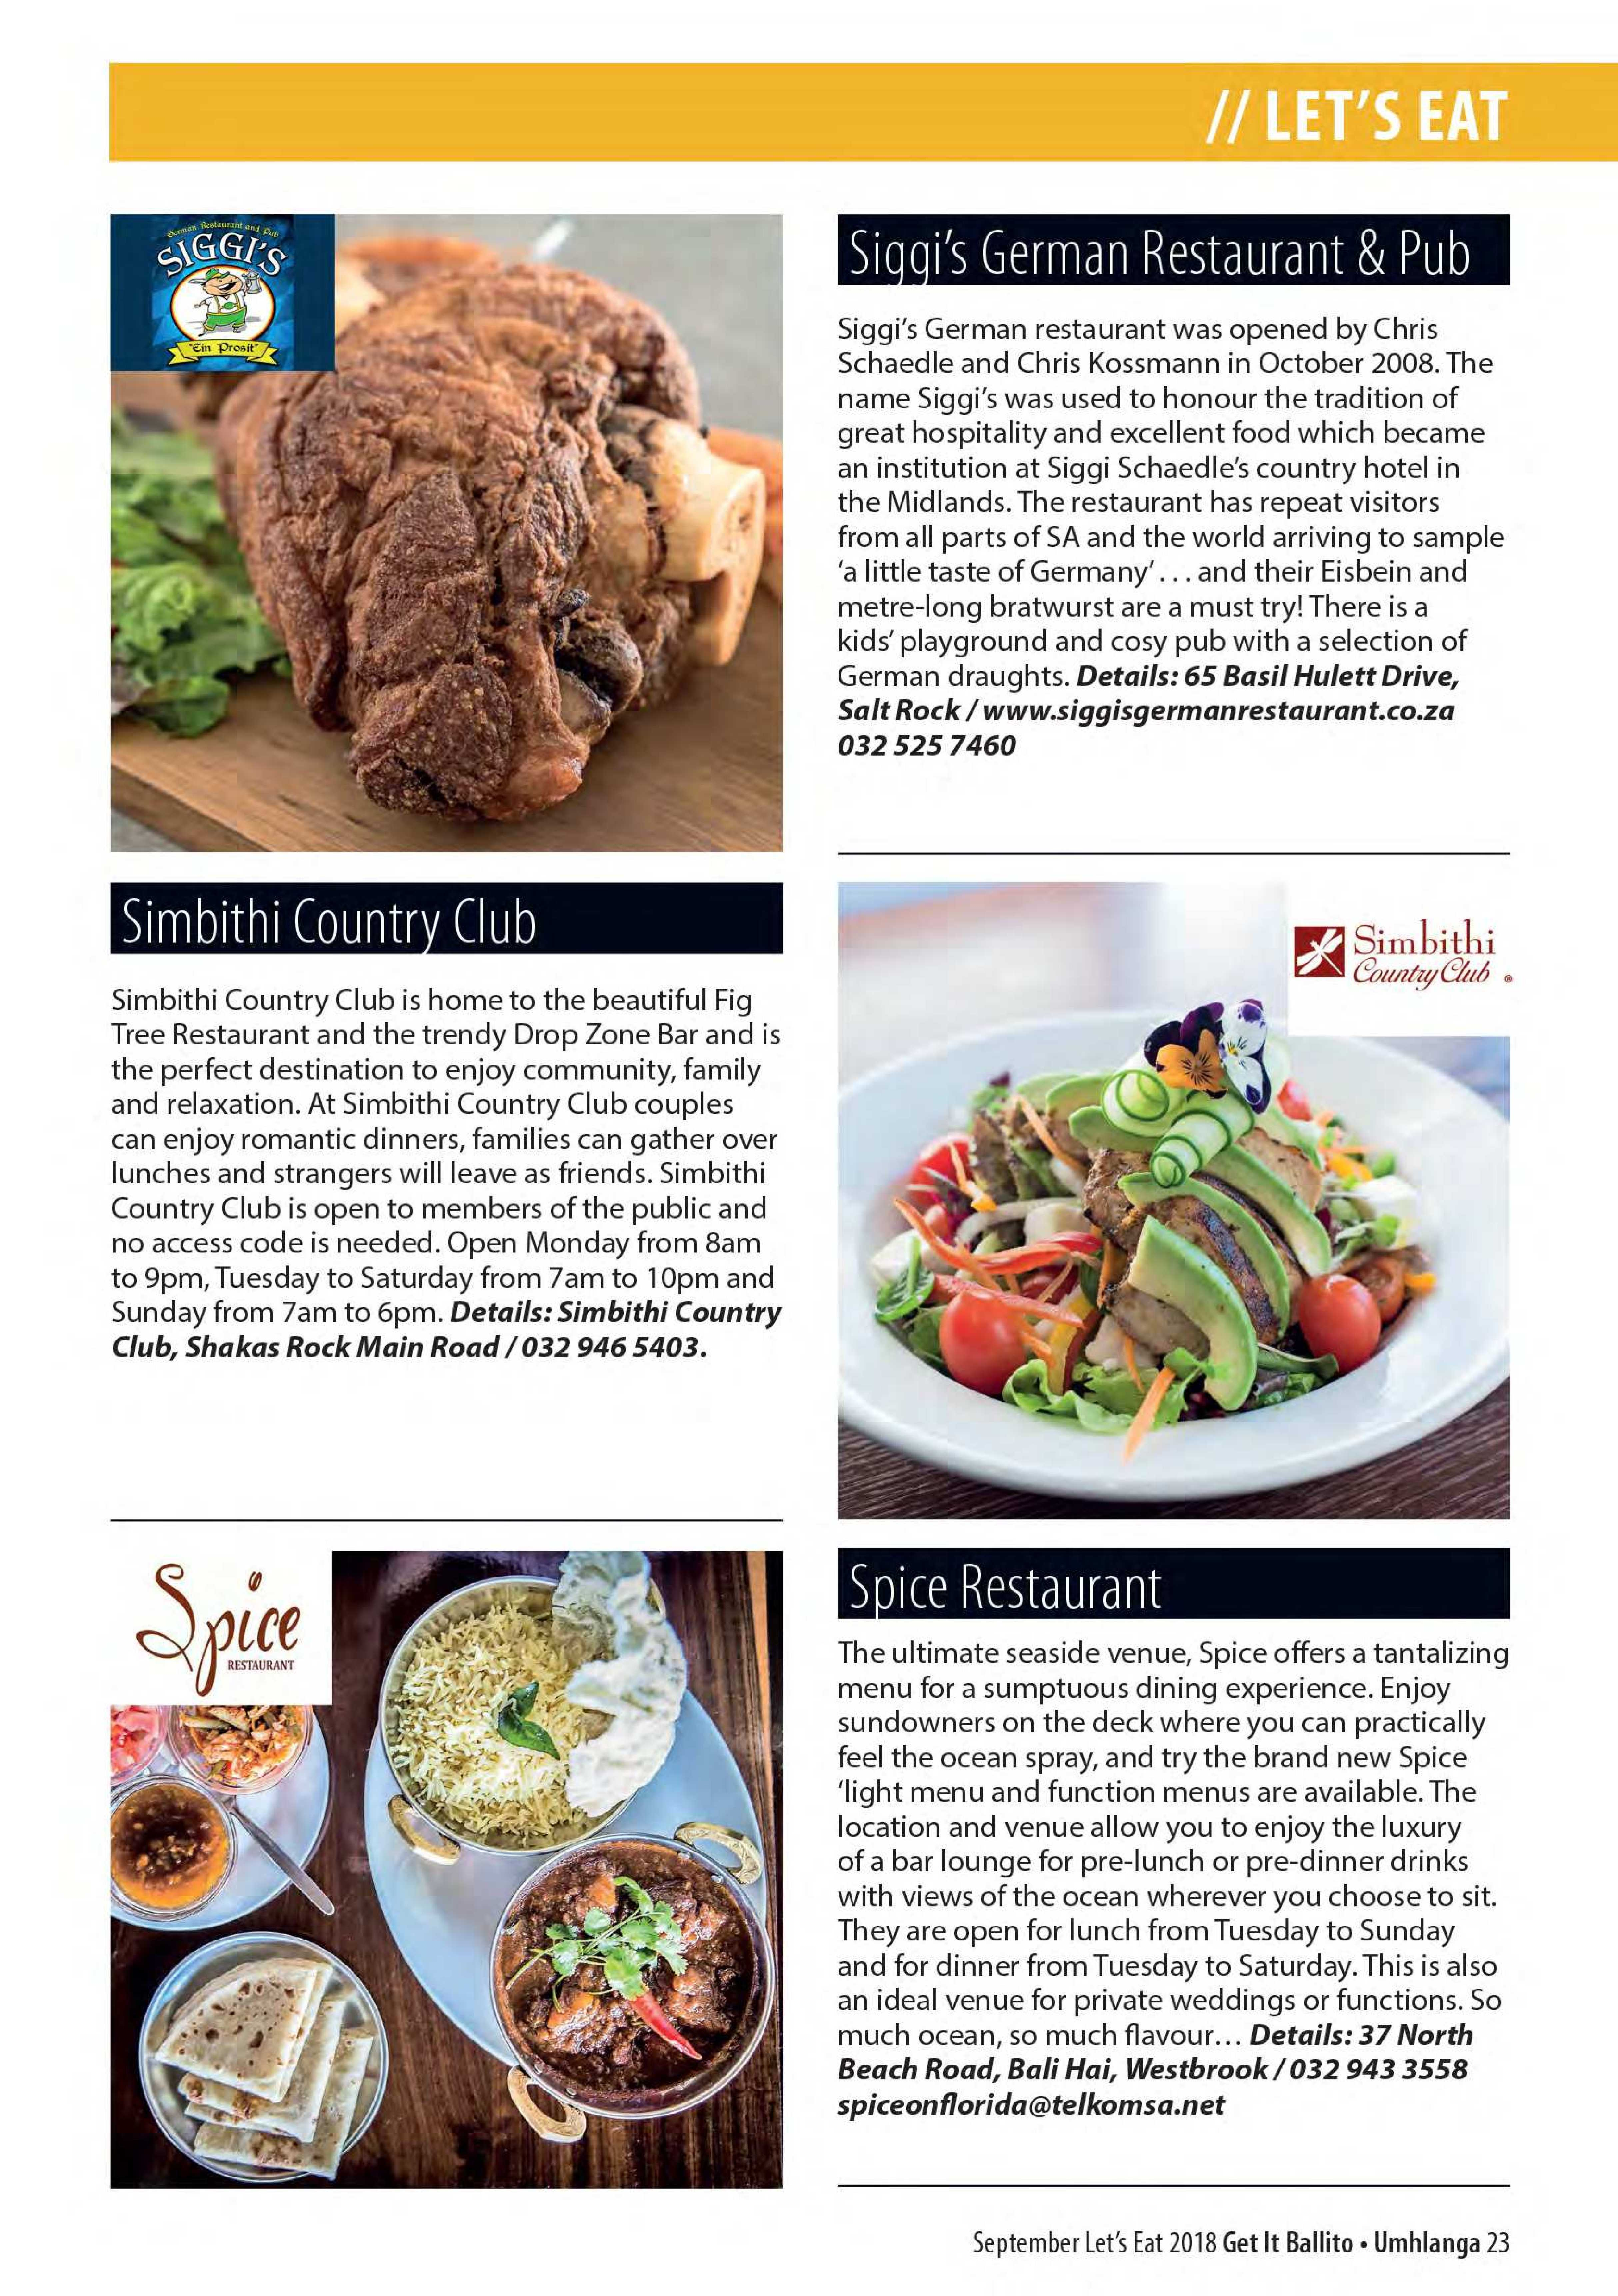 lets-eat-epapers-page-25